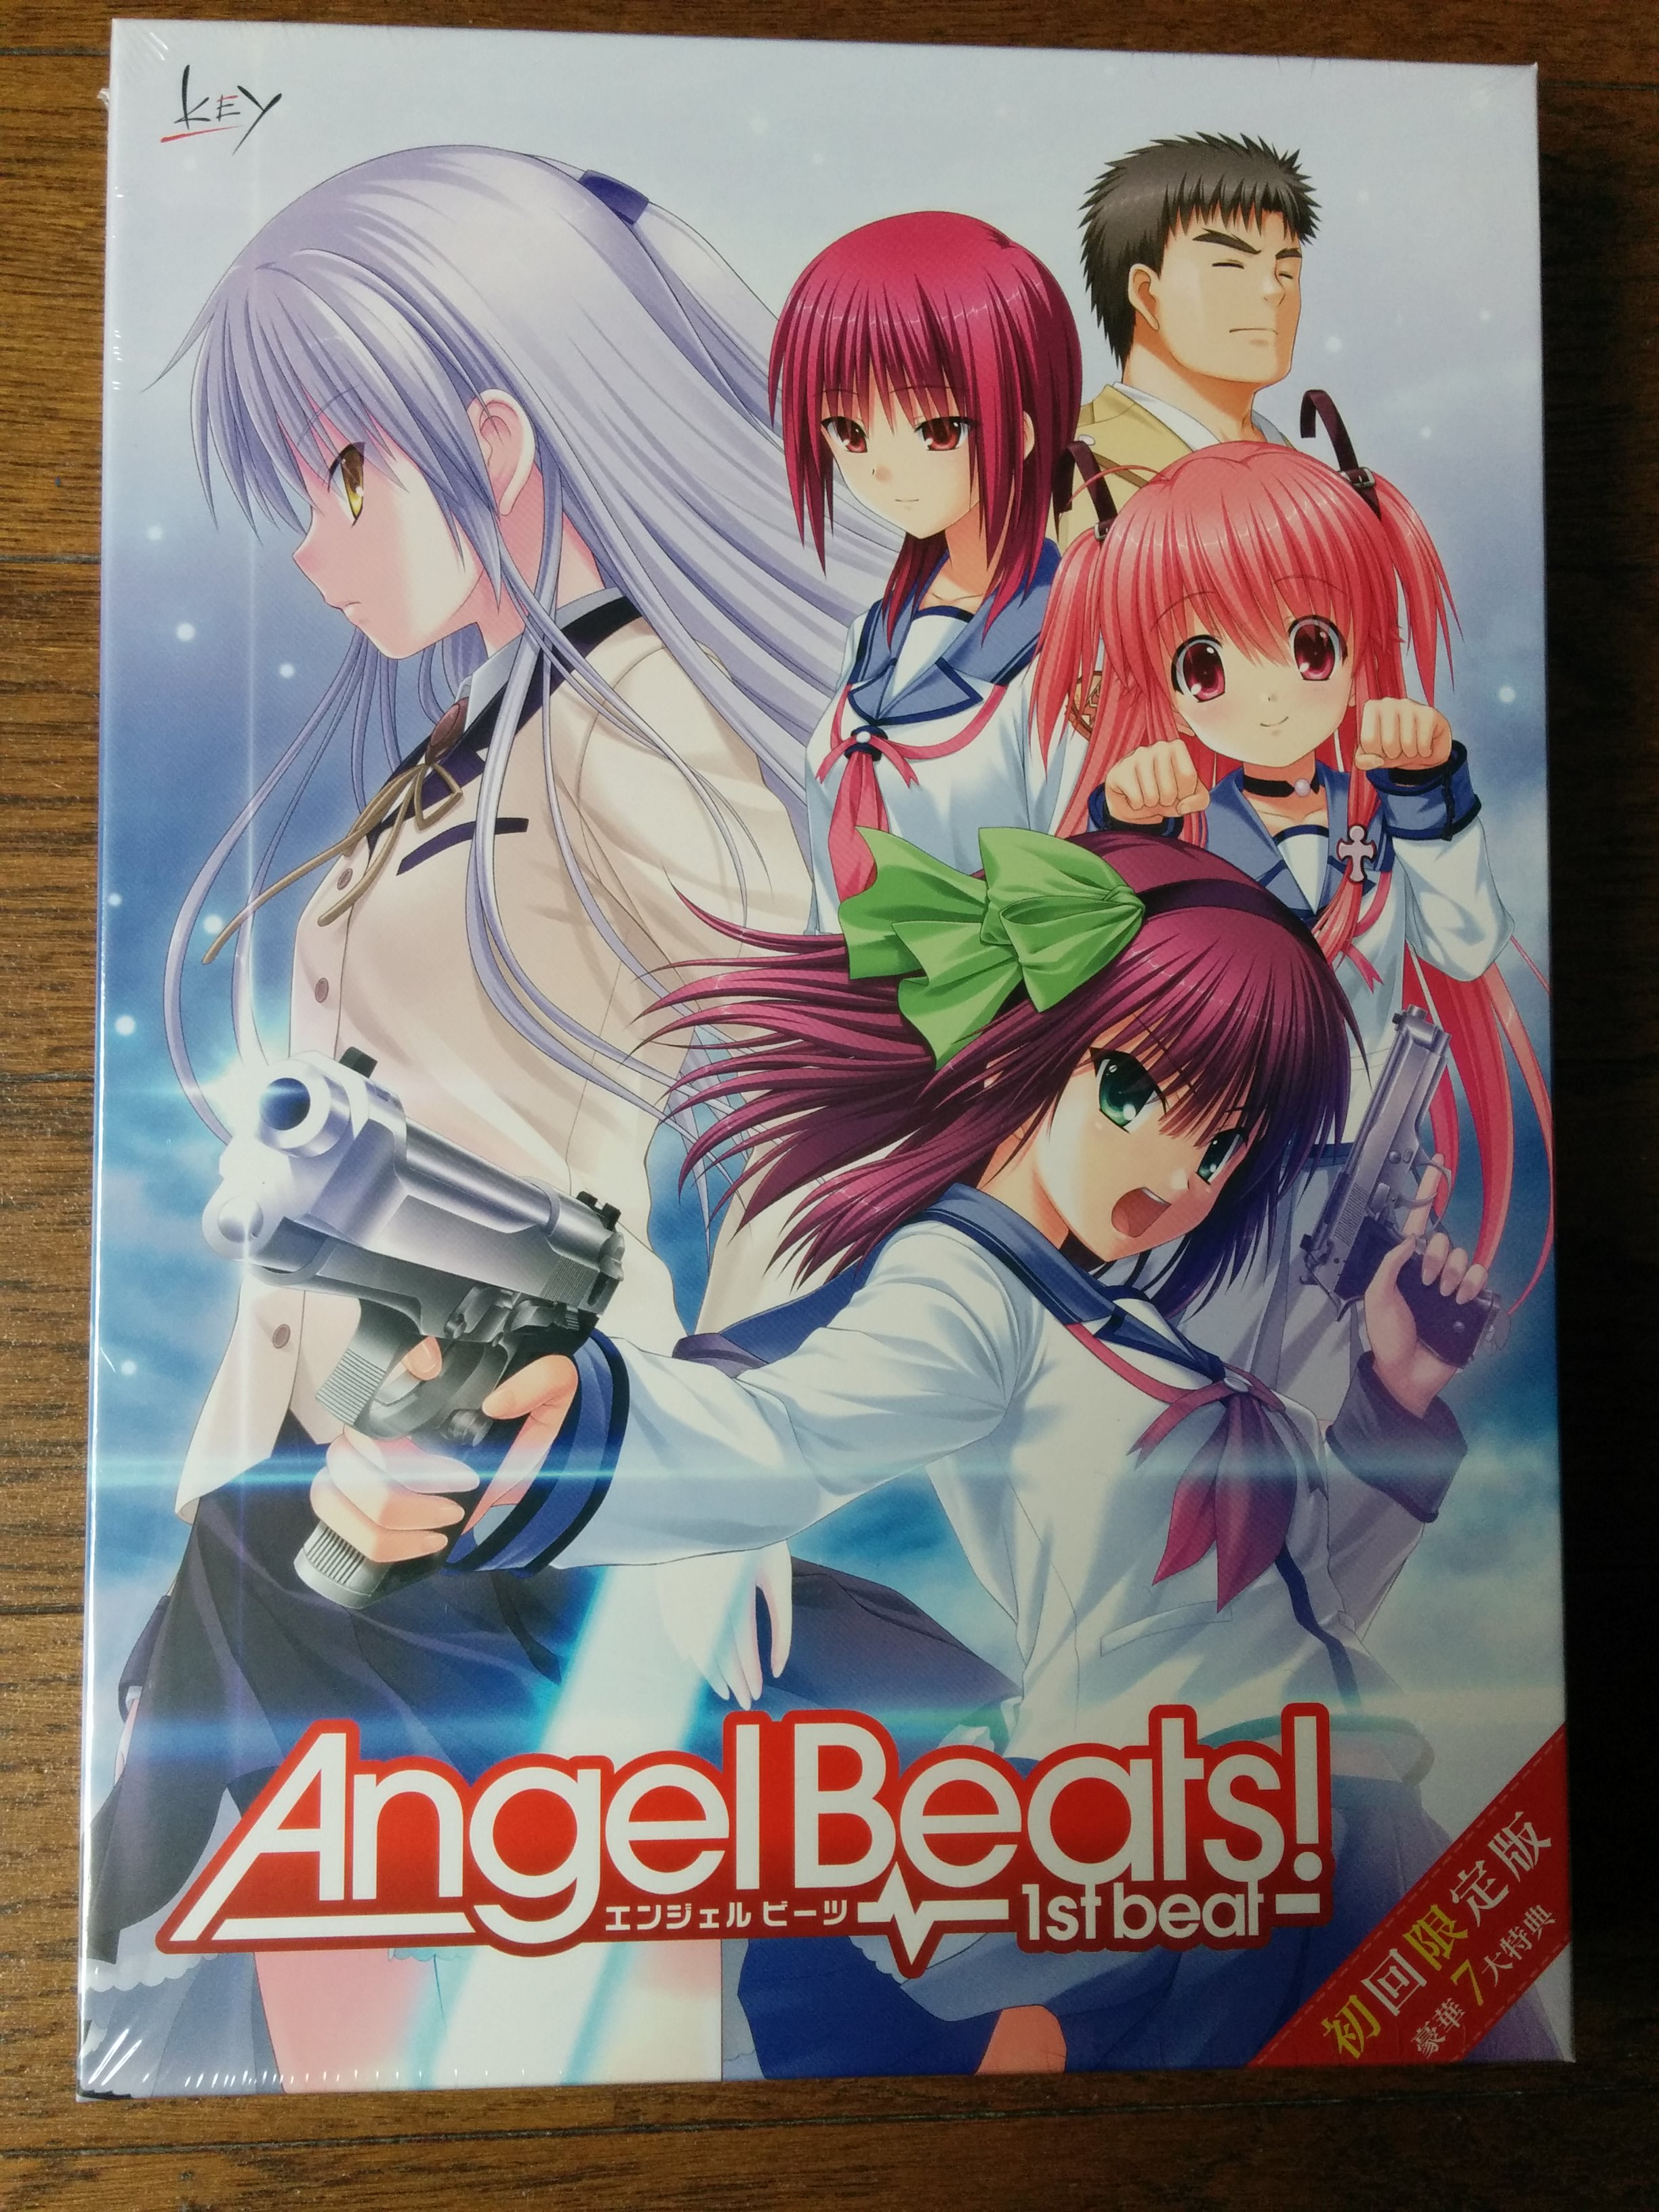 Angel Beats! -1st beat- Released Today!